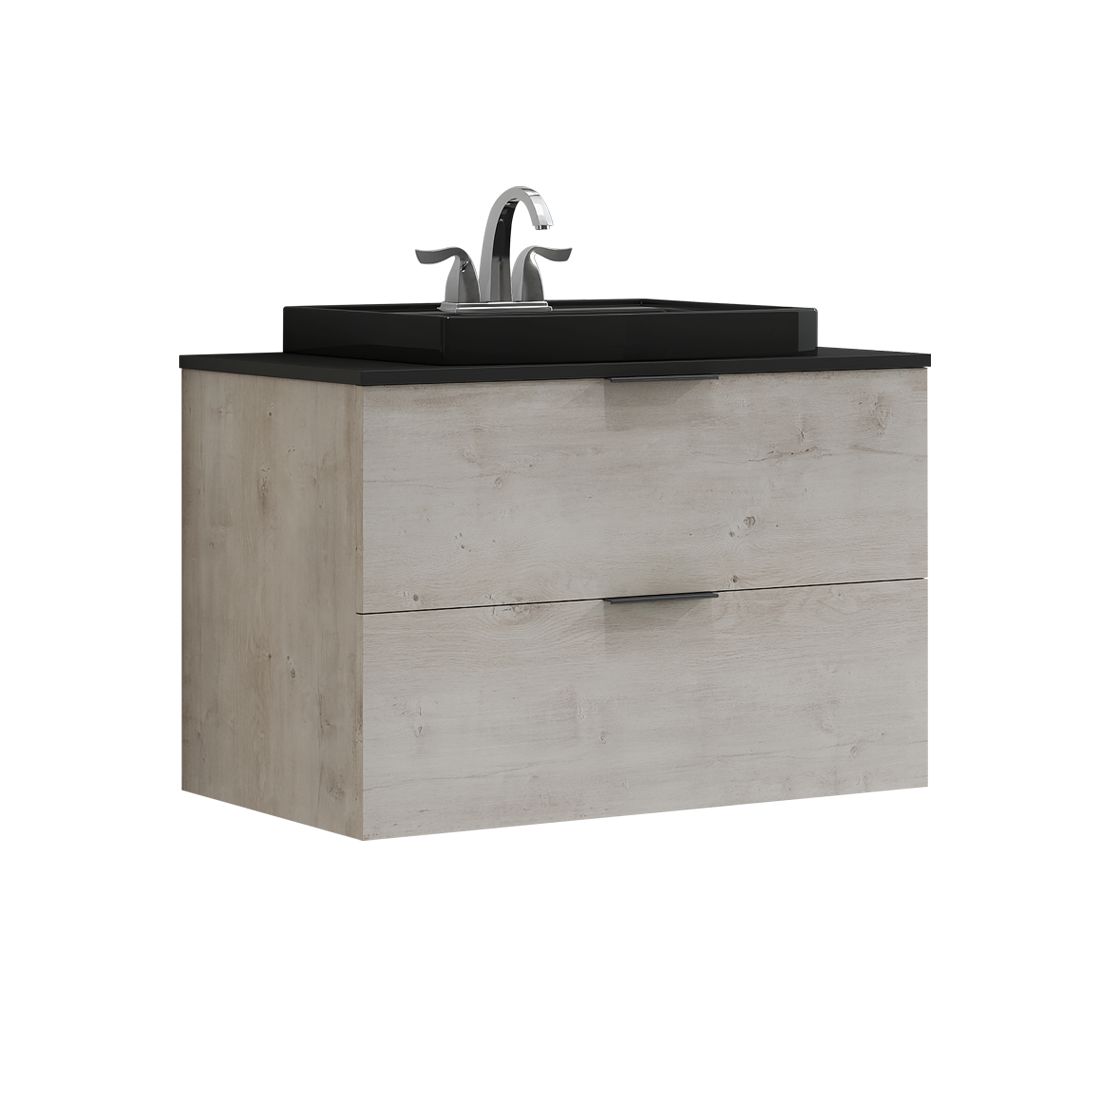 Drayston 30inch-Vanity with black sink front view